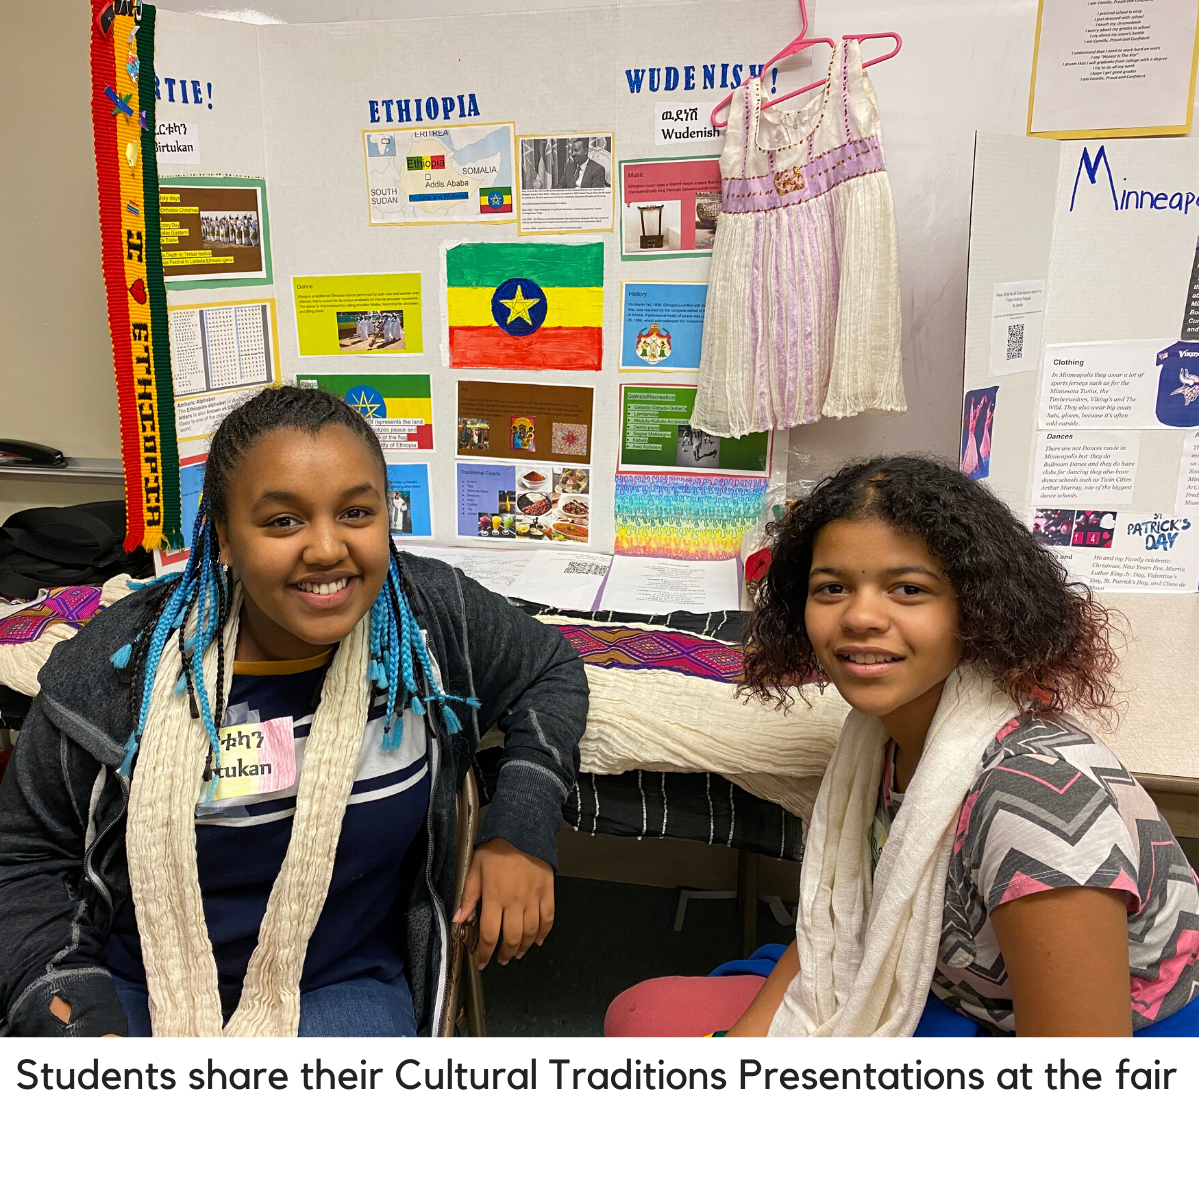 Students share their cultural traditions at the fair